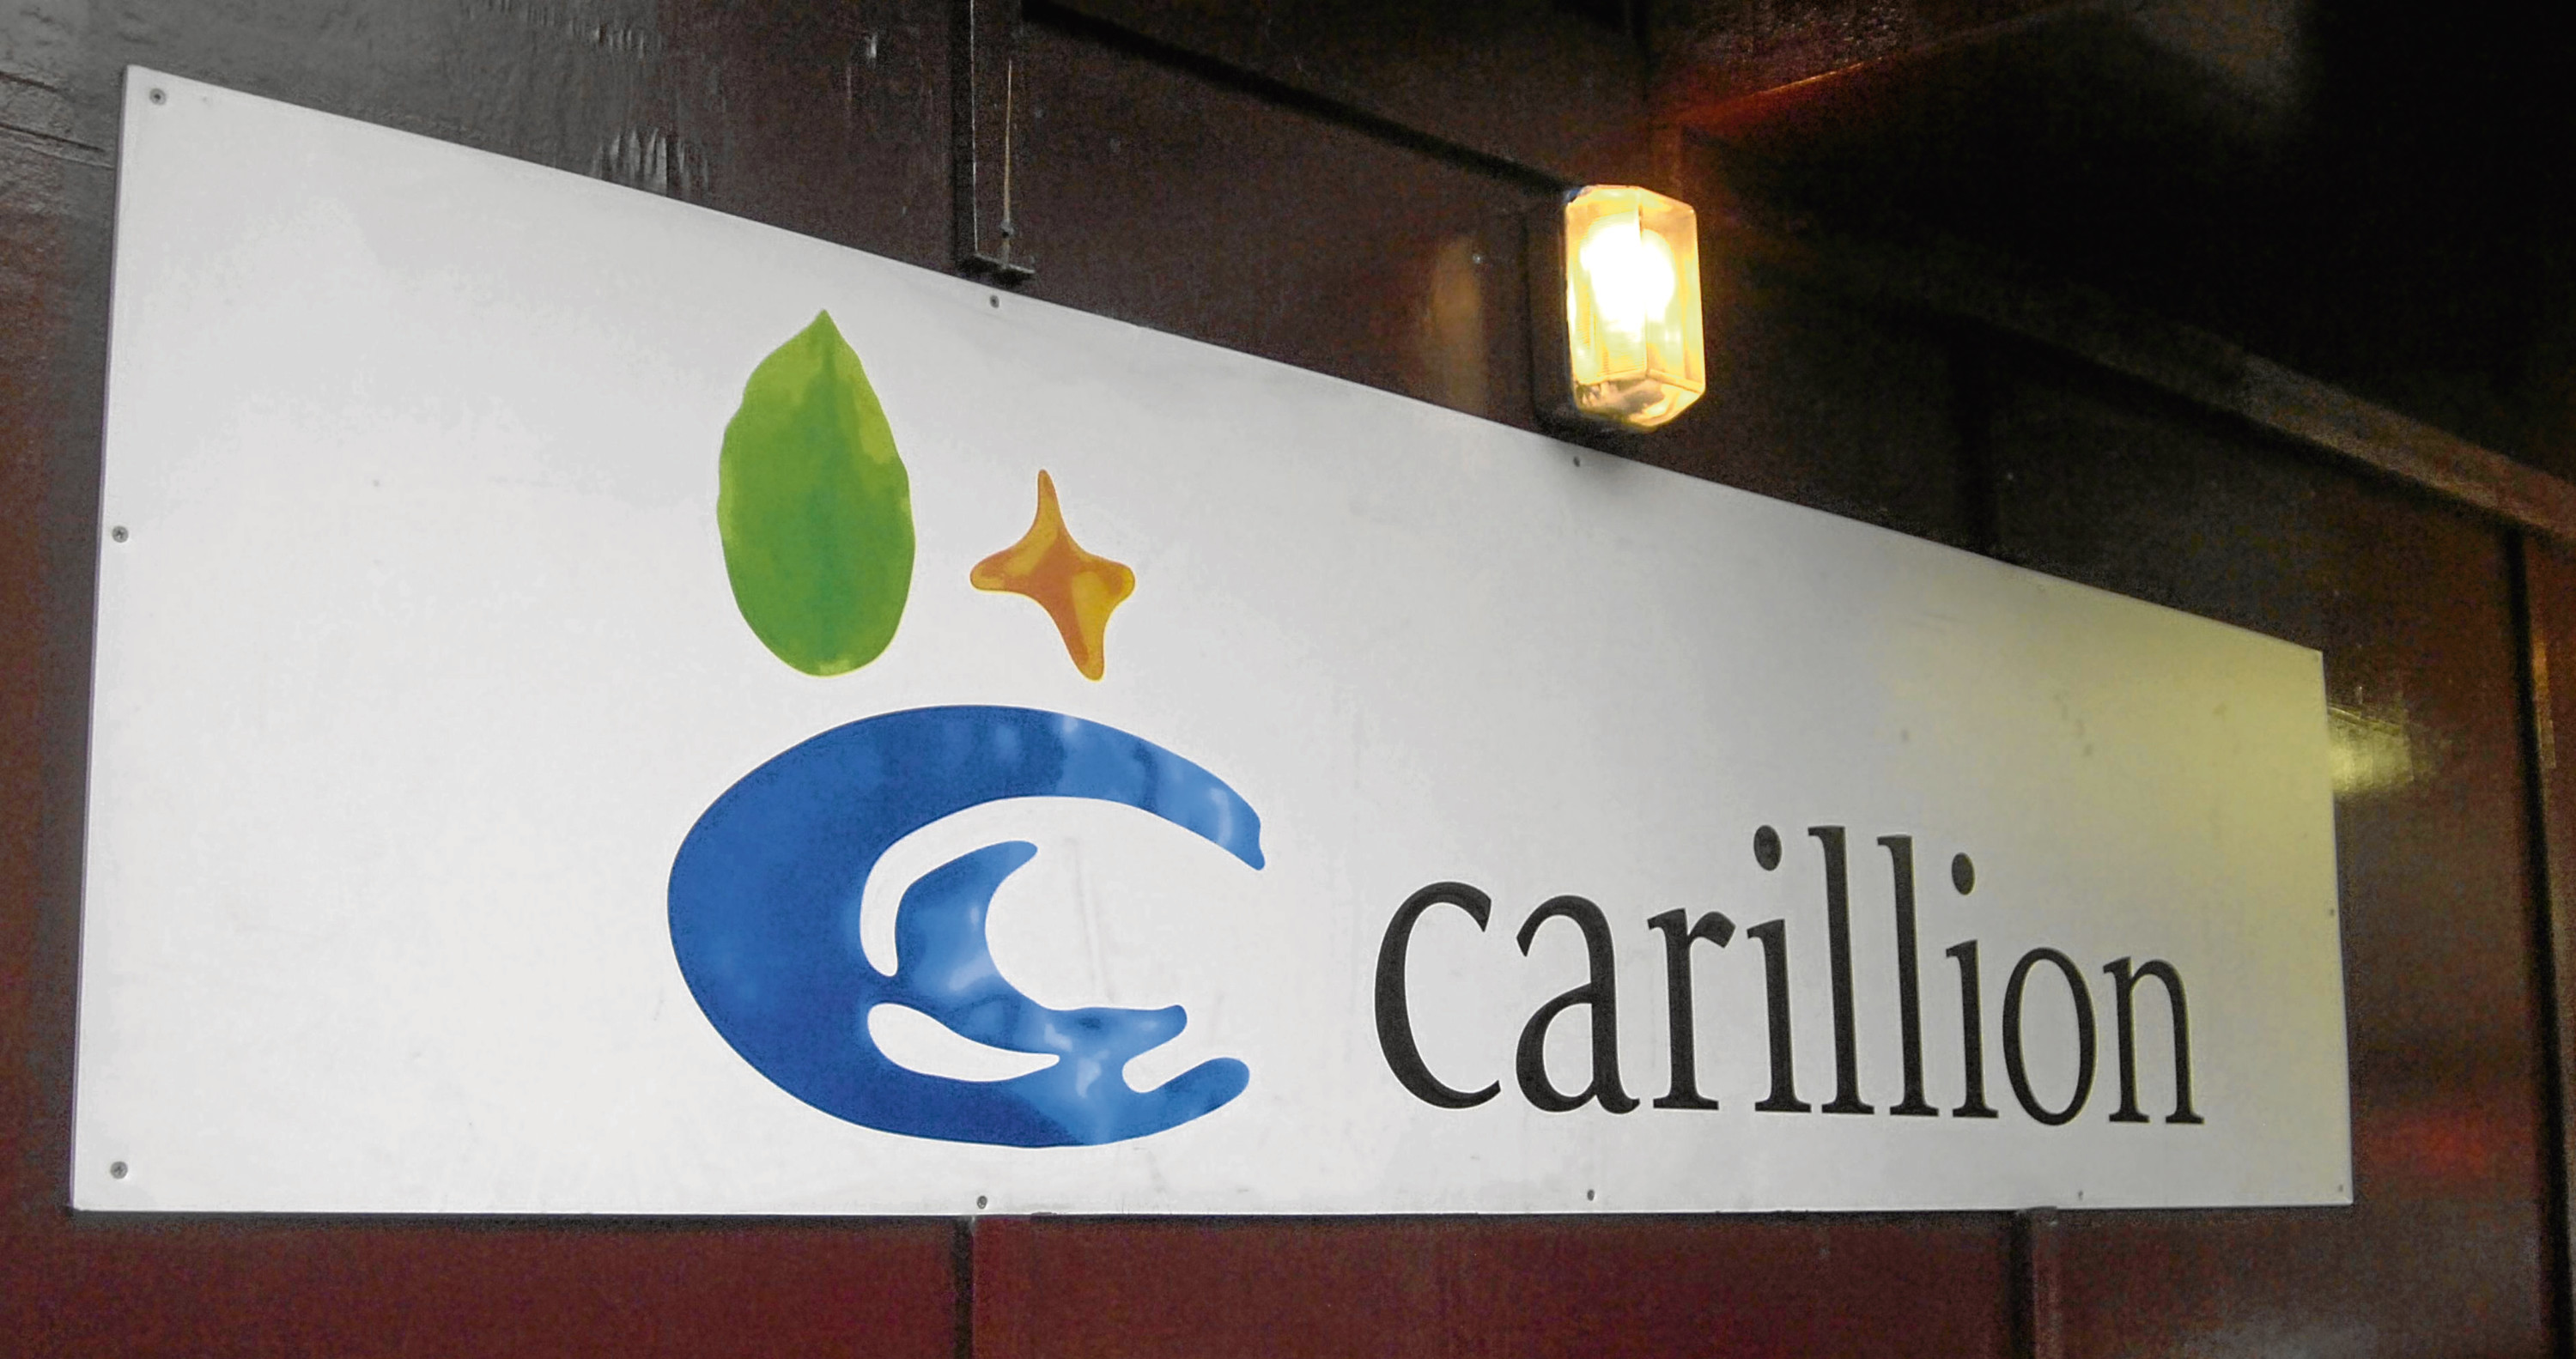 Mr Howson led Carillion from 2012 to 2017